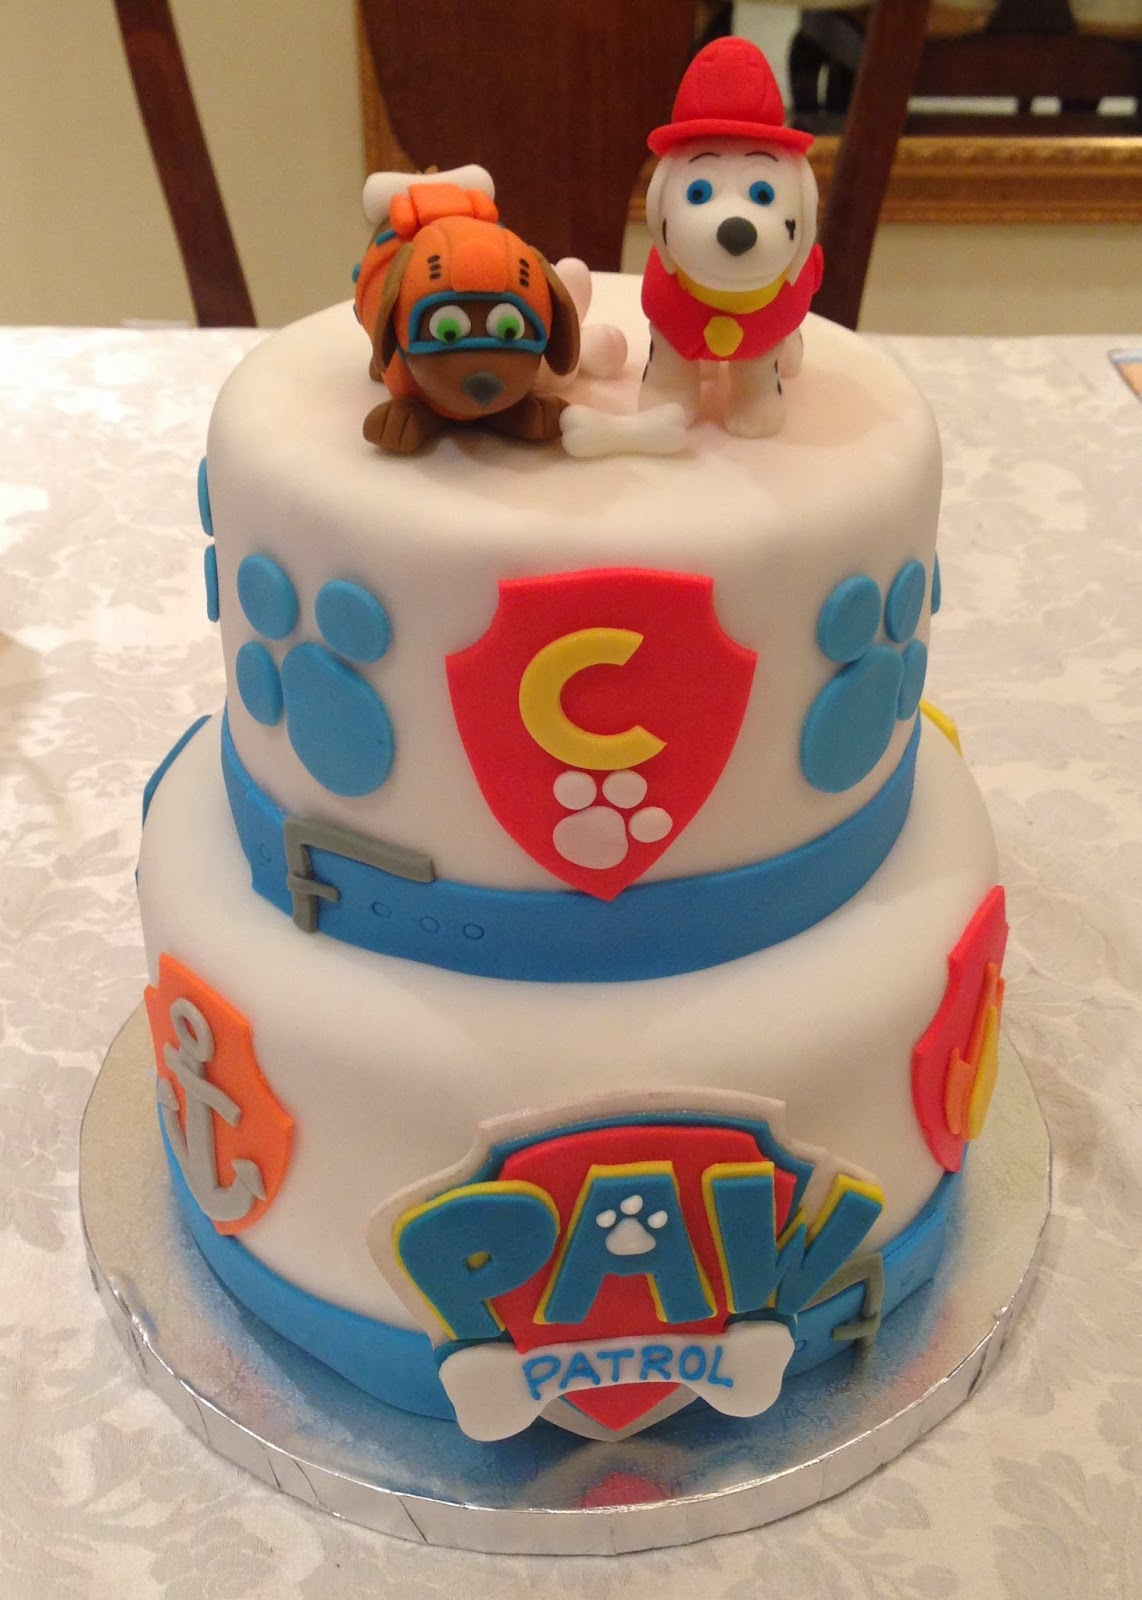 Paw Patrol Images For Cake : Kaylynn Cakes: PAW Patrol